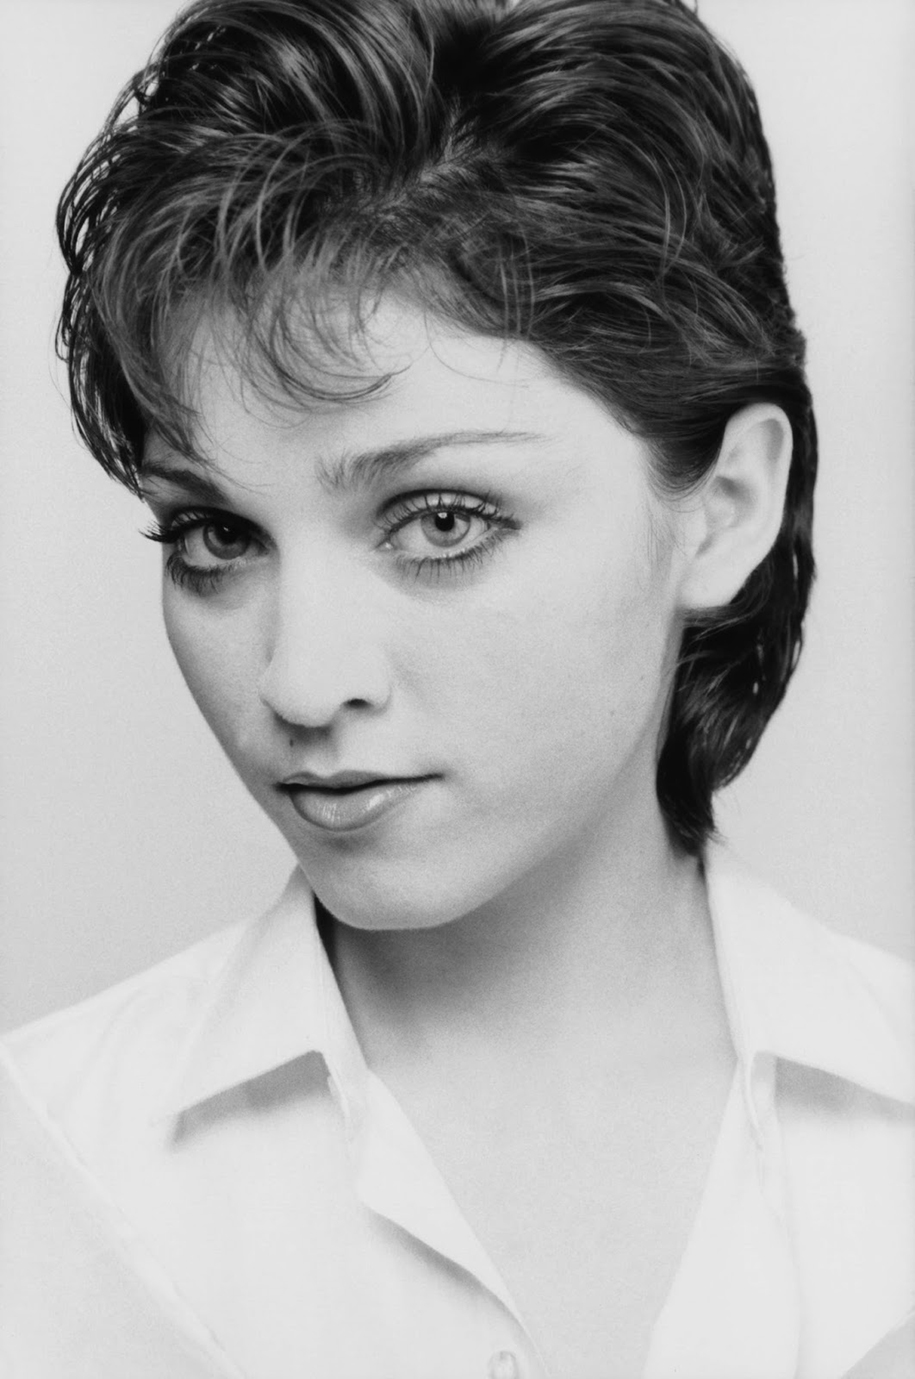 madonna-photoshoot-before-she-was-famous-new-york-5